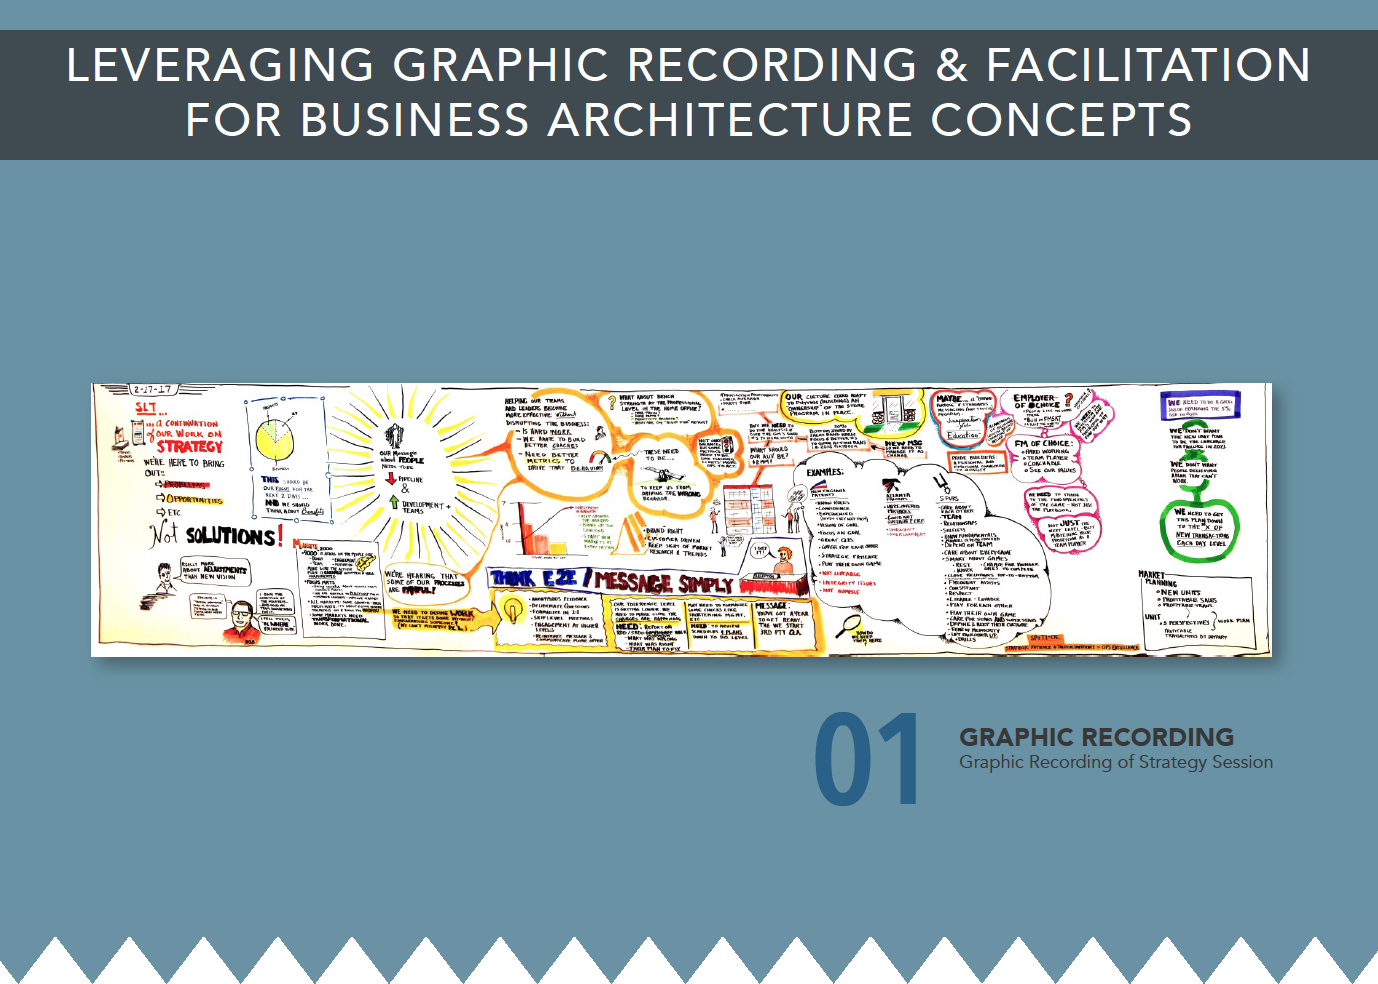 S2E Examples of Graphic Facilitation & Recording